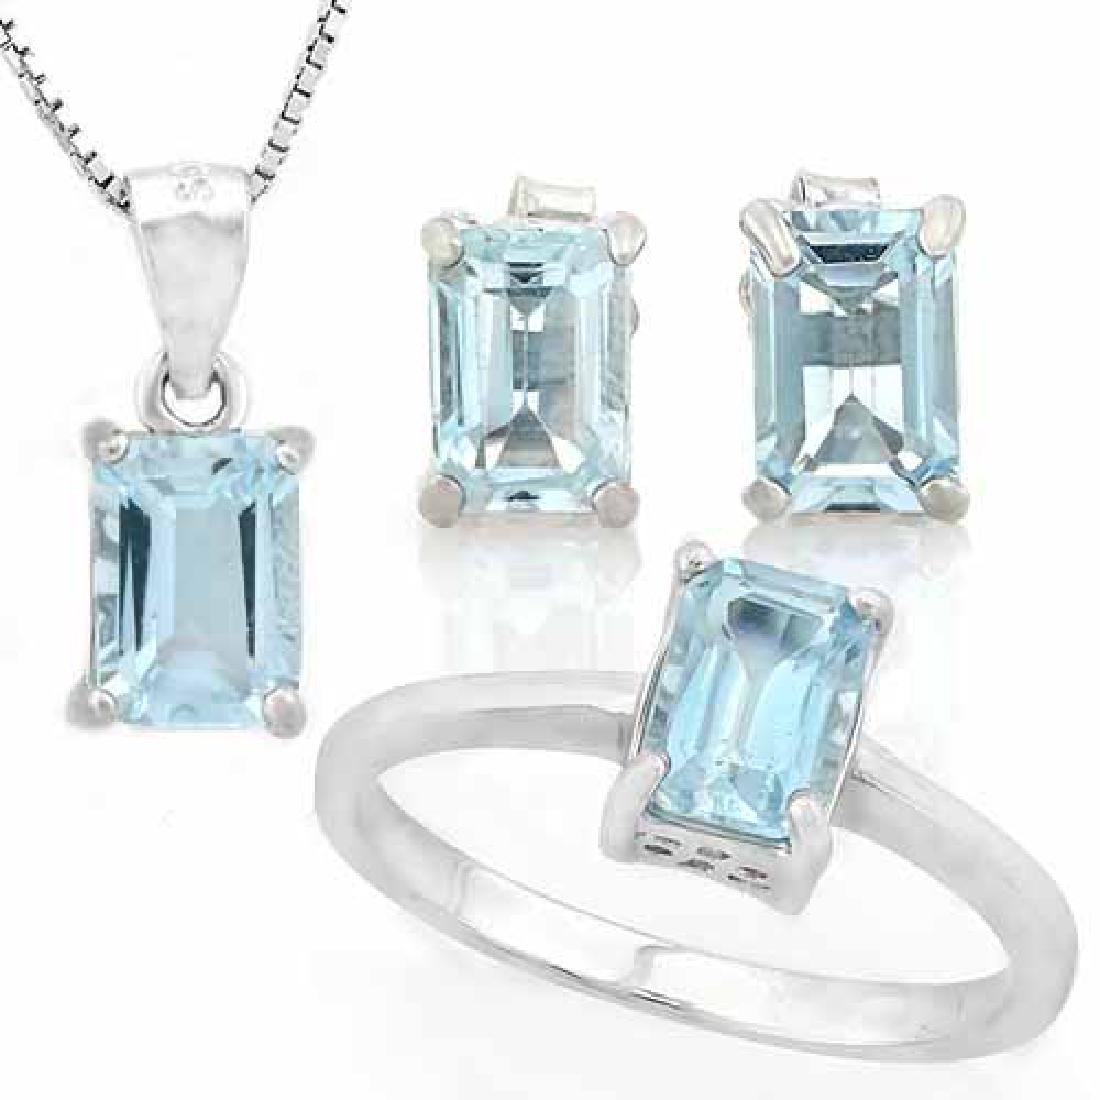 3 CARAT BABY SWISS BLUE TOPAZ 925 STERLING SILVER SET (